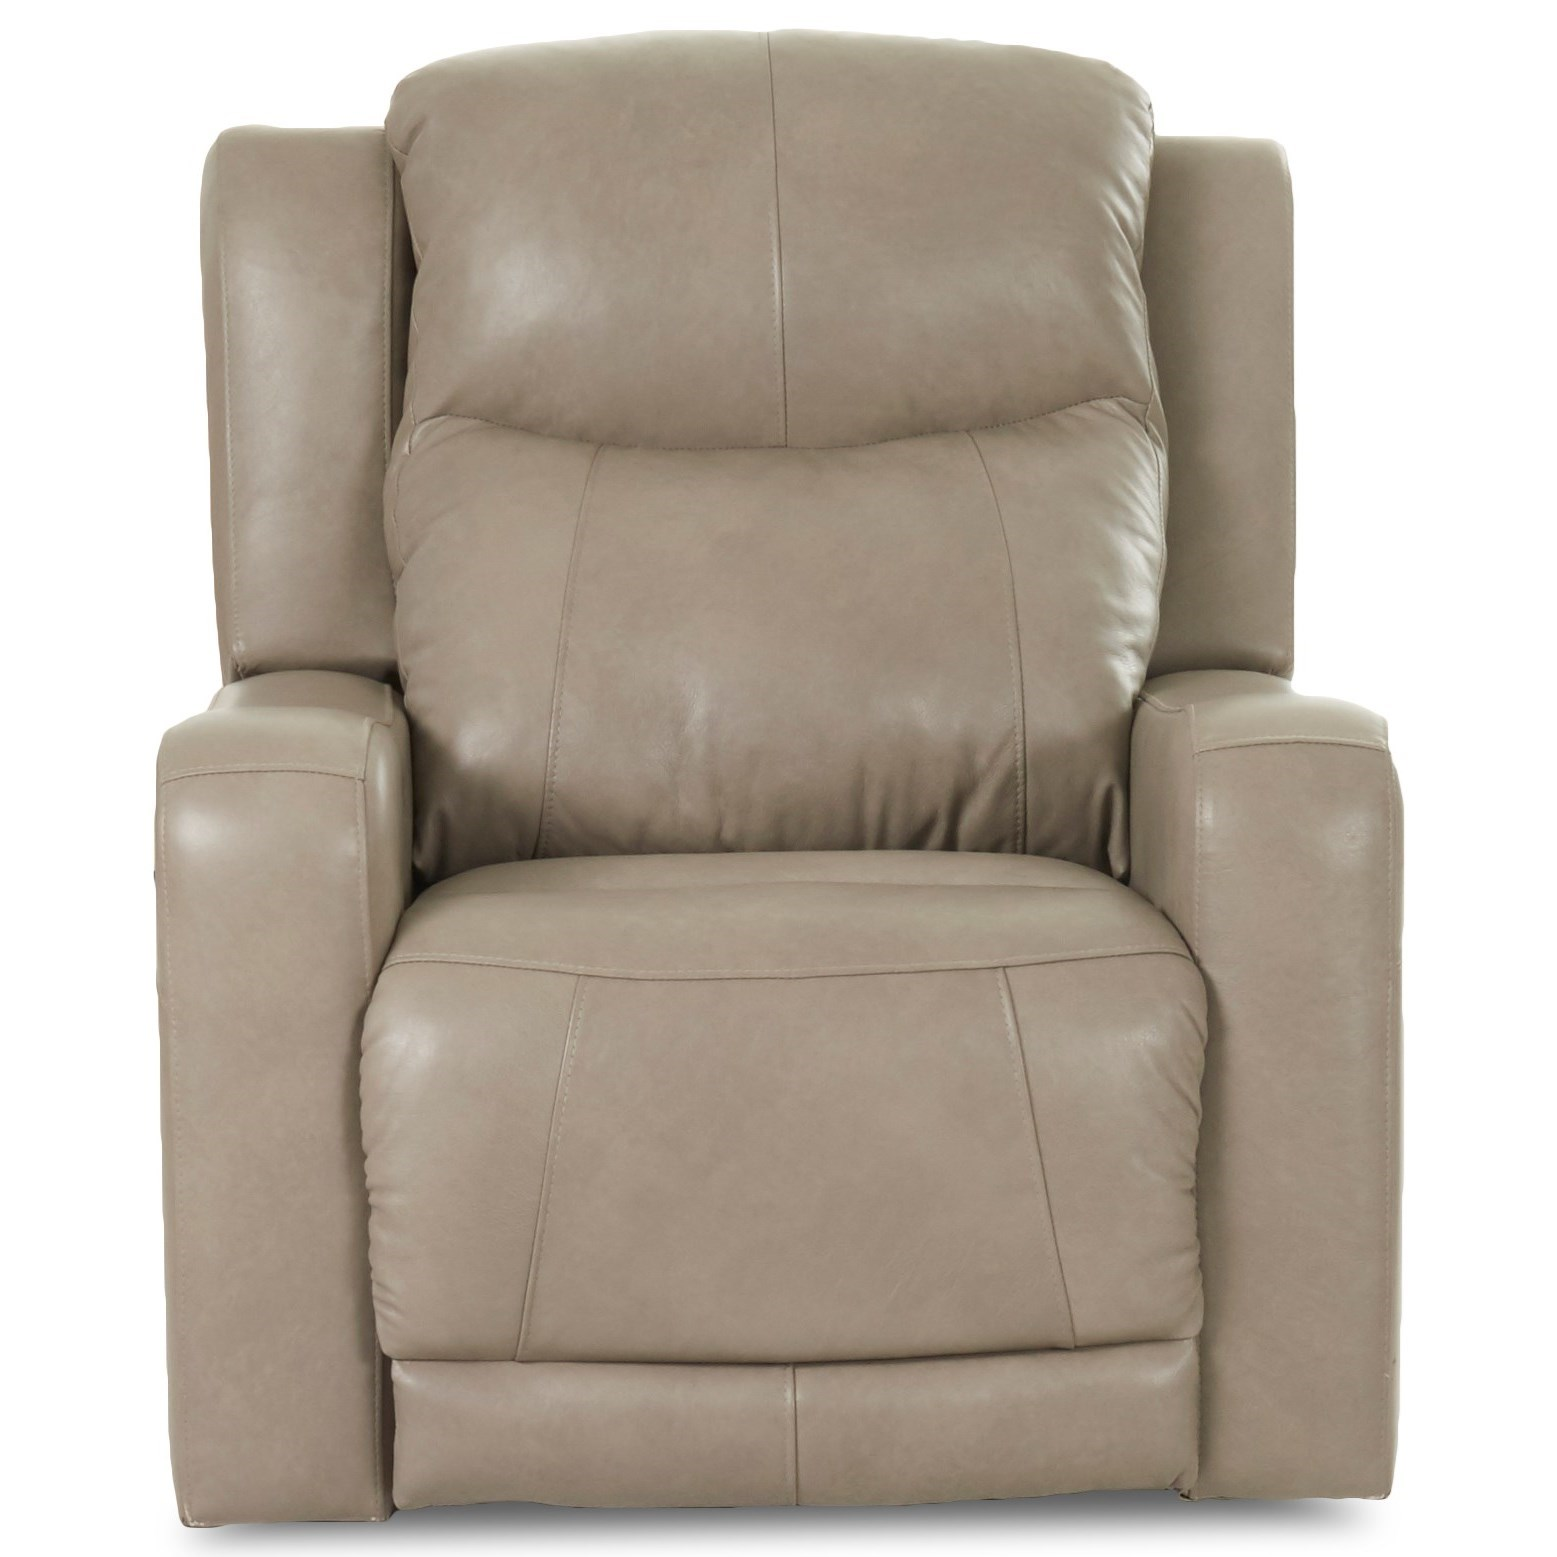 Pwr Rocking Recliner w/ Pwr Headrest